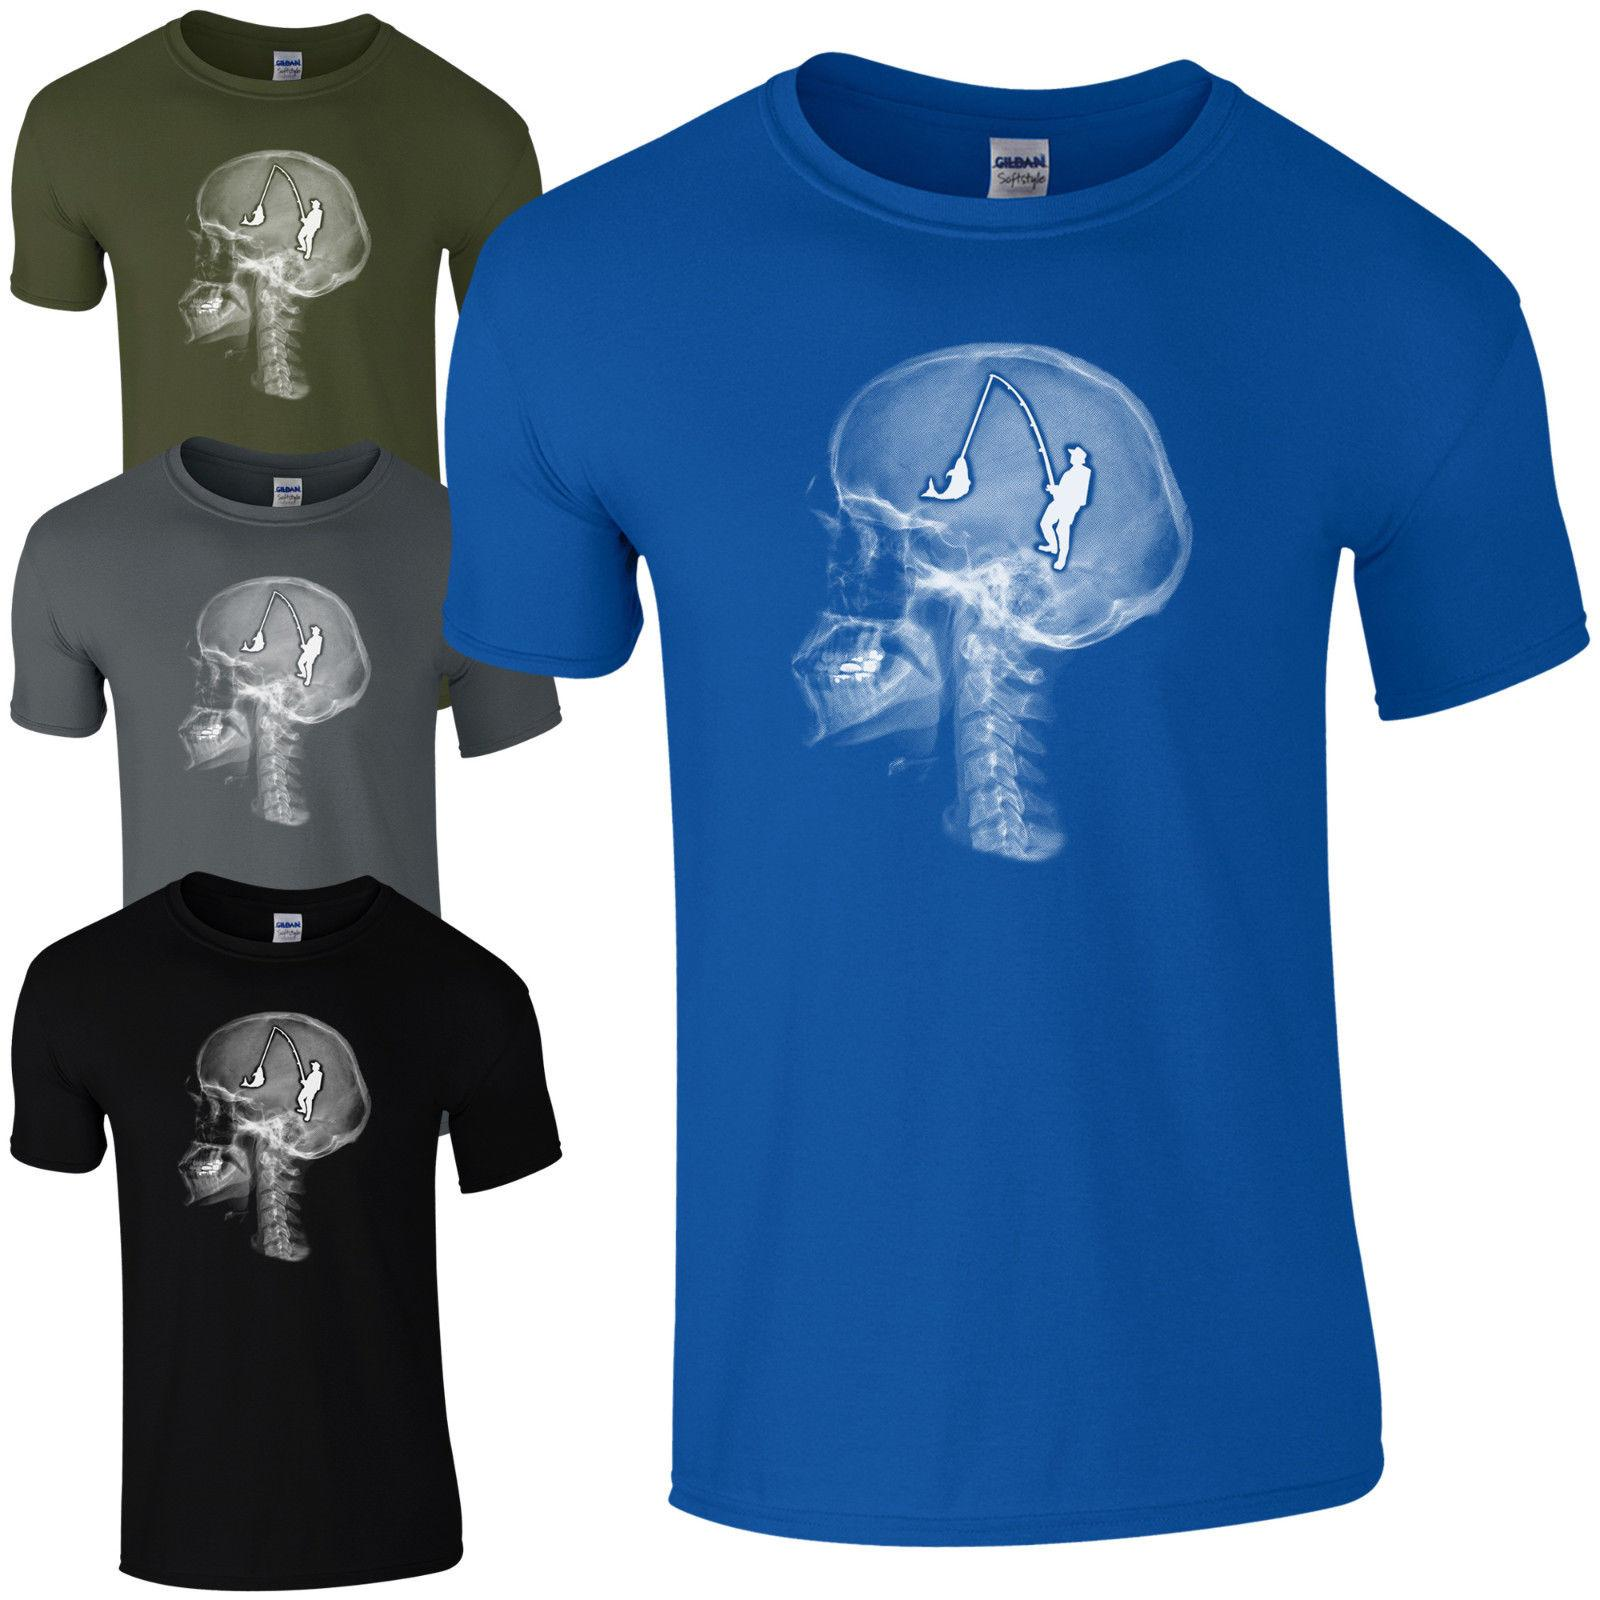 957601e1d3d Fishing On The Brain T Shirt Funny Skull X Ray Fathers Day Dad Gift Mens  Top Cool Casual Pride T Shirt This T Shirt T Shirts Best From Cls6688523